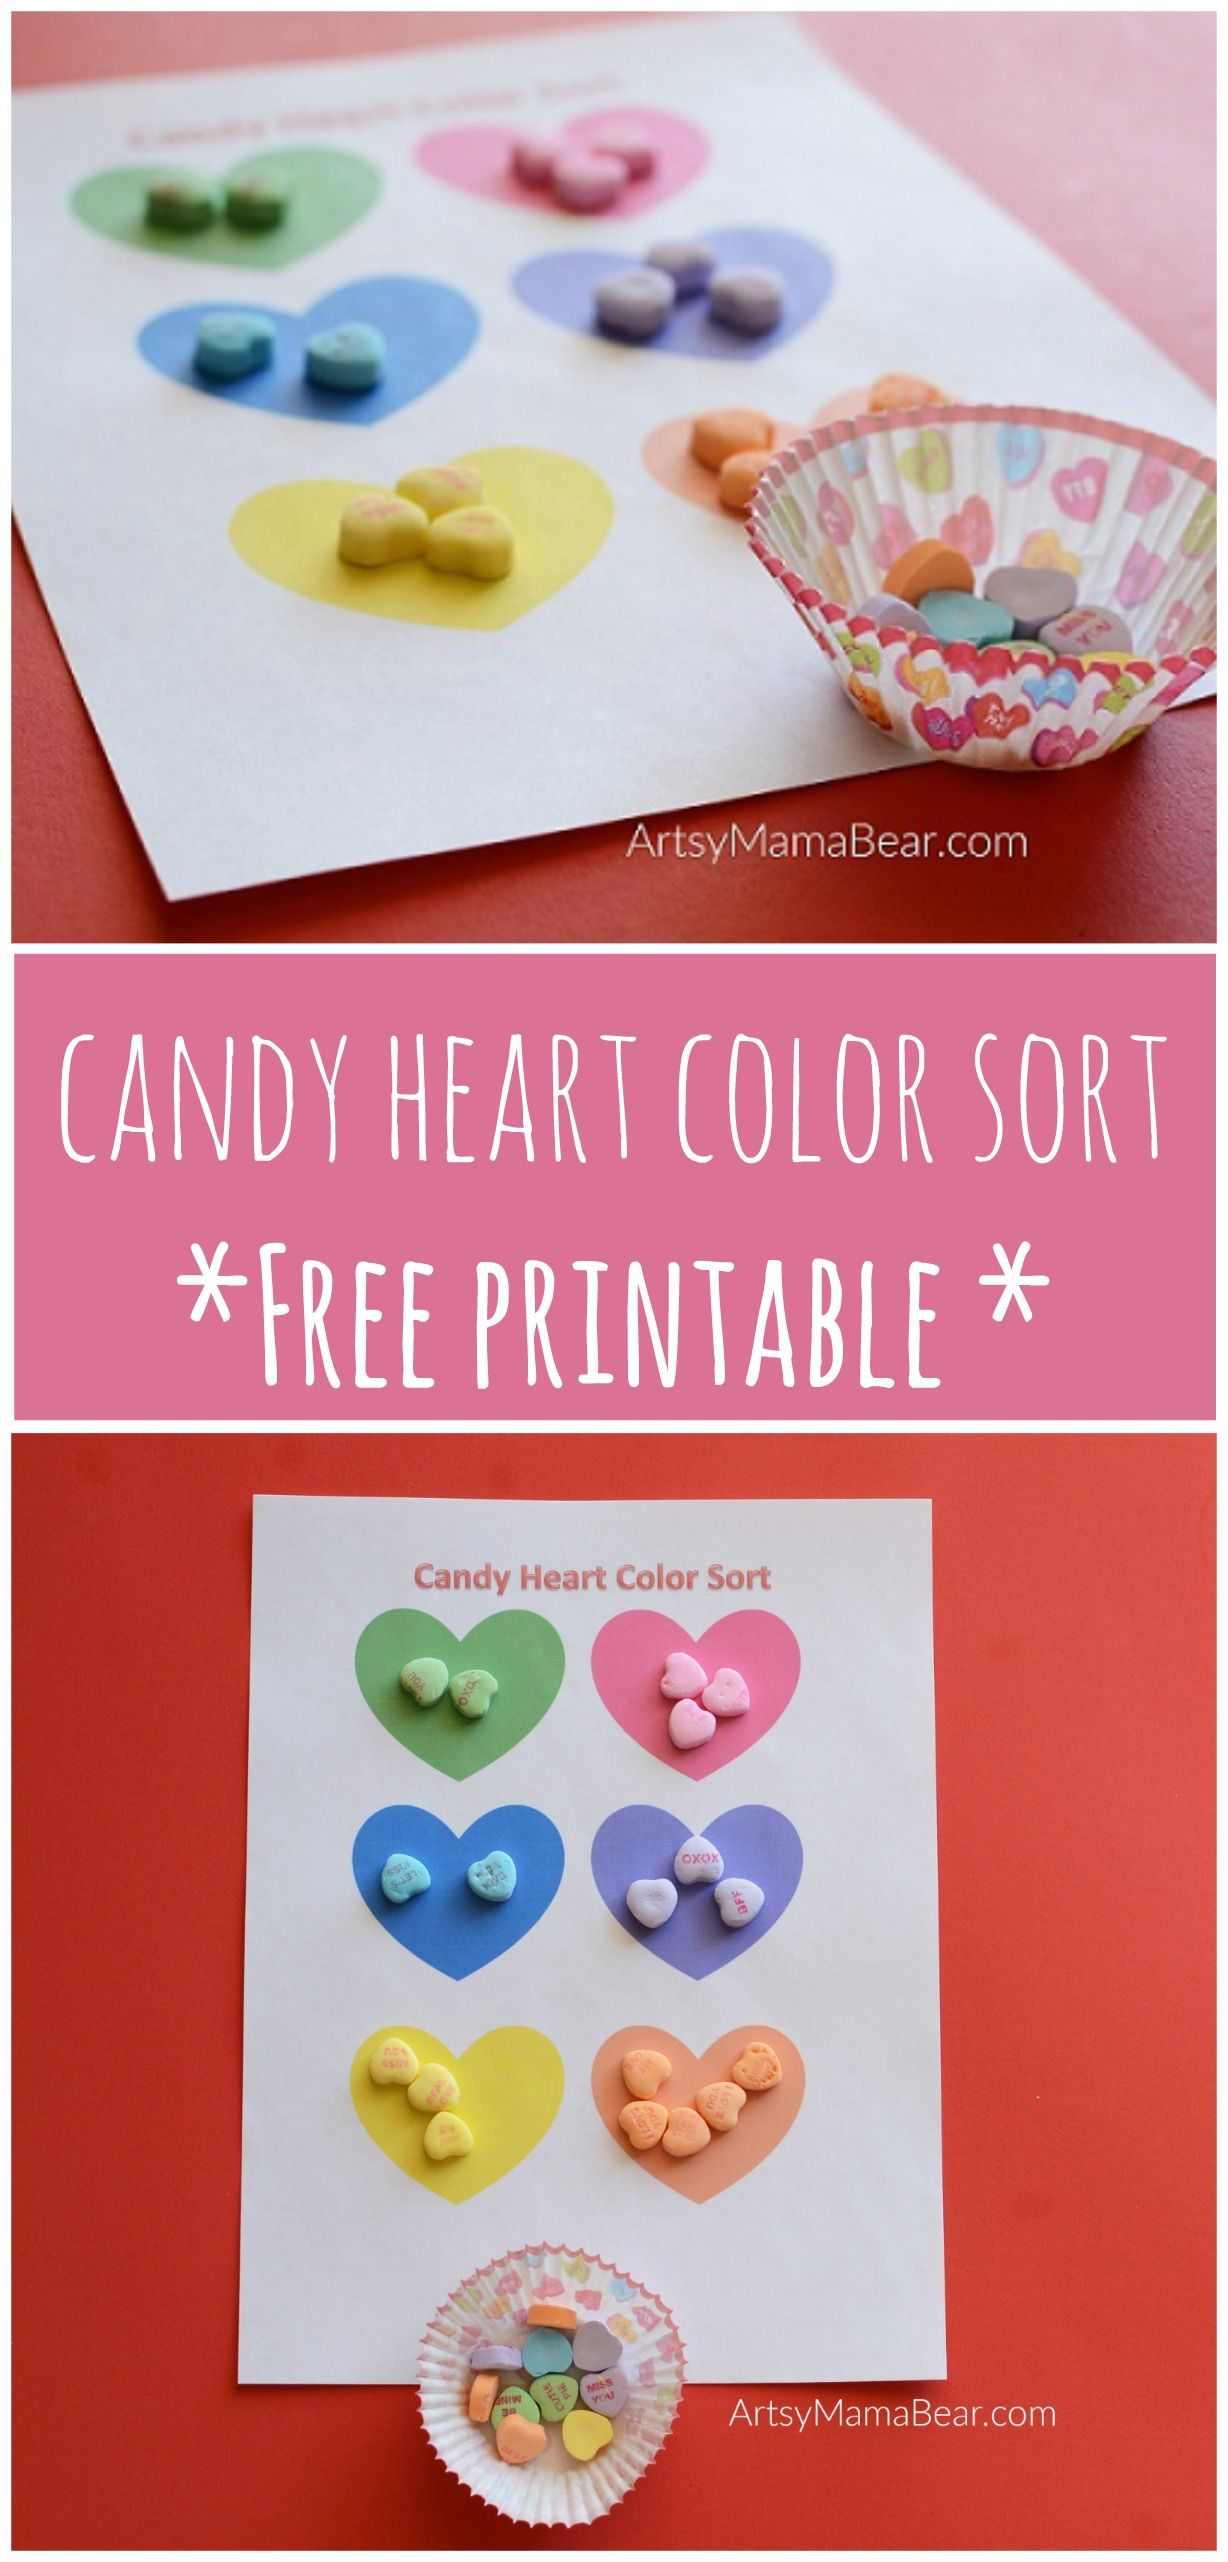 Candy Heart Color Sort Free Printable